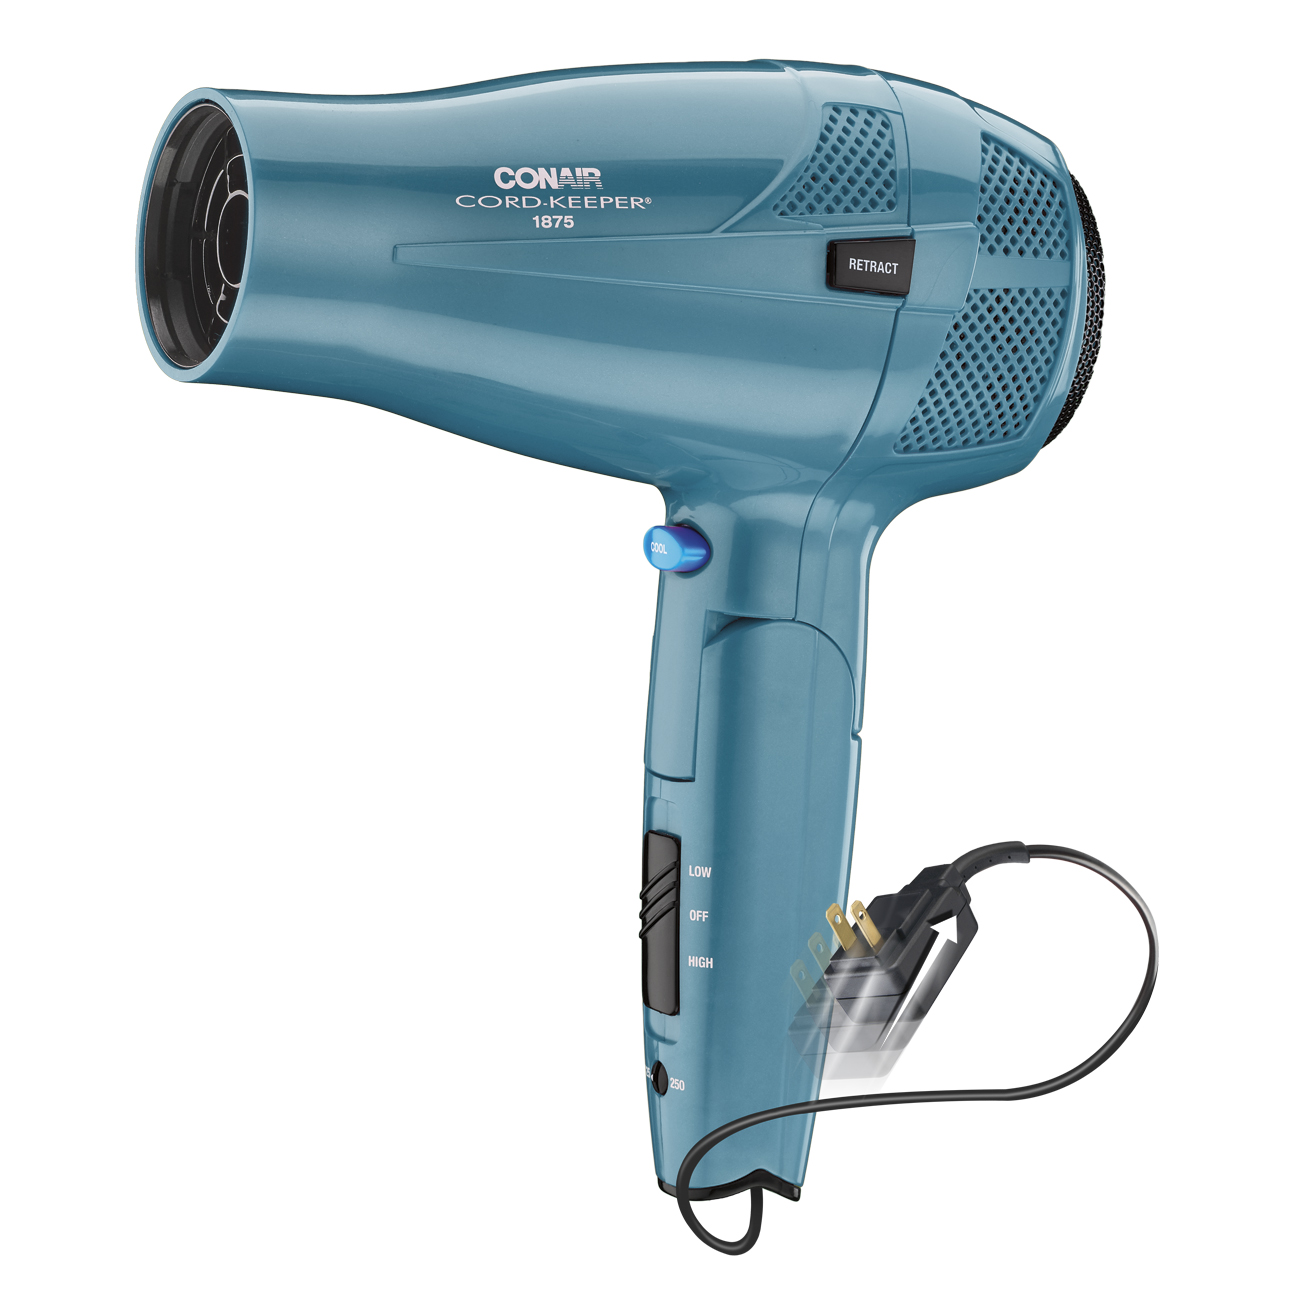 Conair 1875 Watt Cord-Keeper Hair Dryer, 289TPR